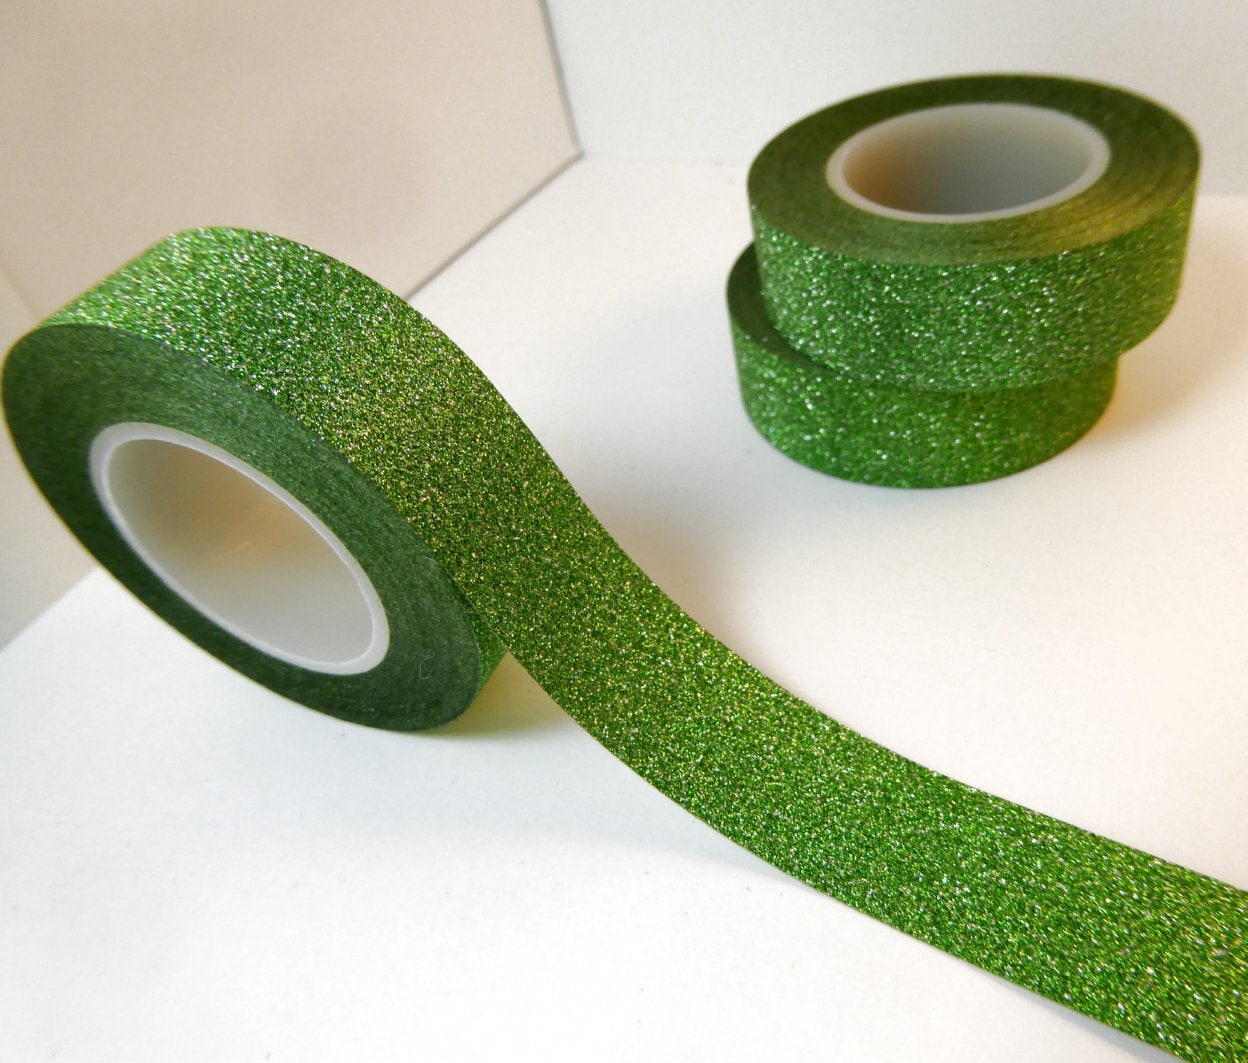 Glitter washi tape in green paper tape great for scrapbooking glitter washi tape in green paper tape great for scrapbooking paper crafts and decorations for st patricks day and christmas jeuxipadfo Images